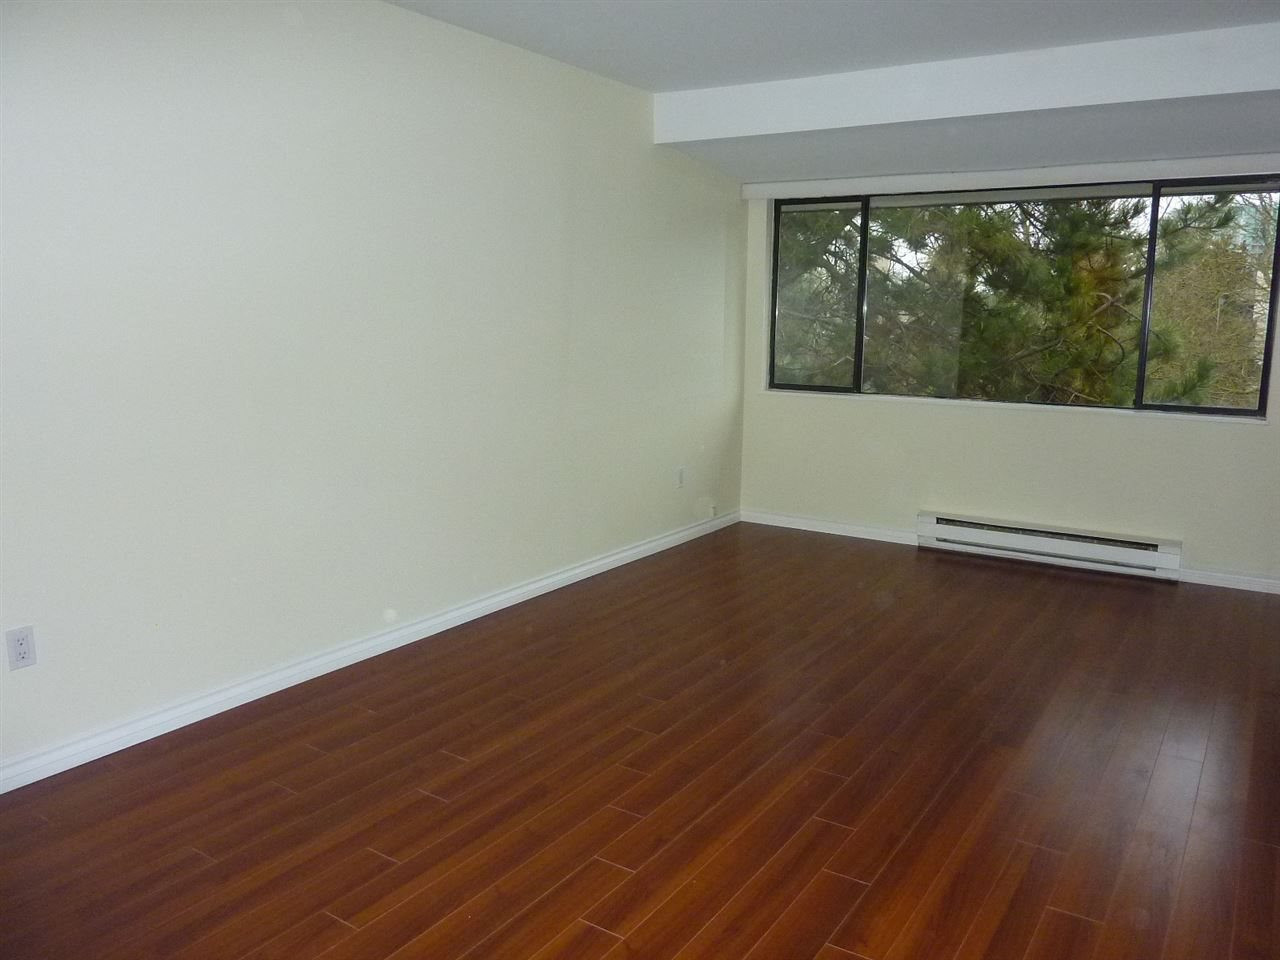 Hardwood Flooring Richmond Bc Of 311 7295 Moffatt Road In Richmond Brighouse south Condo for Sale In Regarding Photo